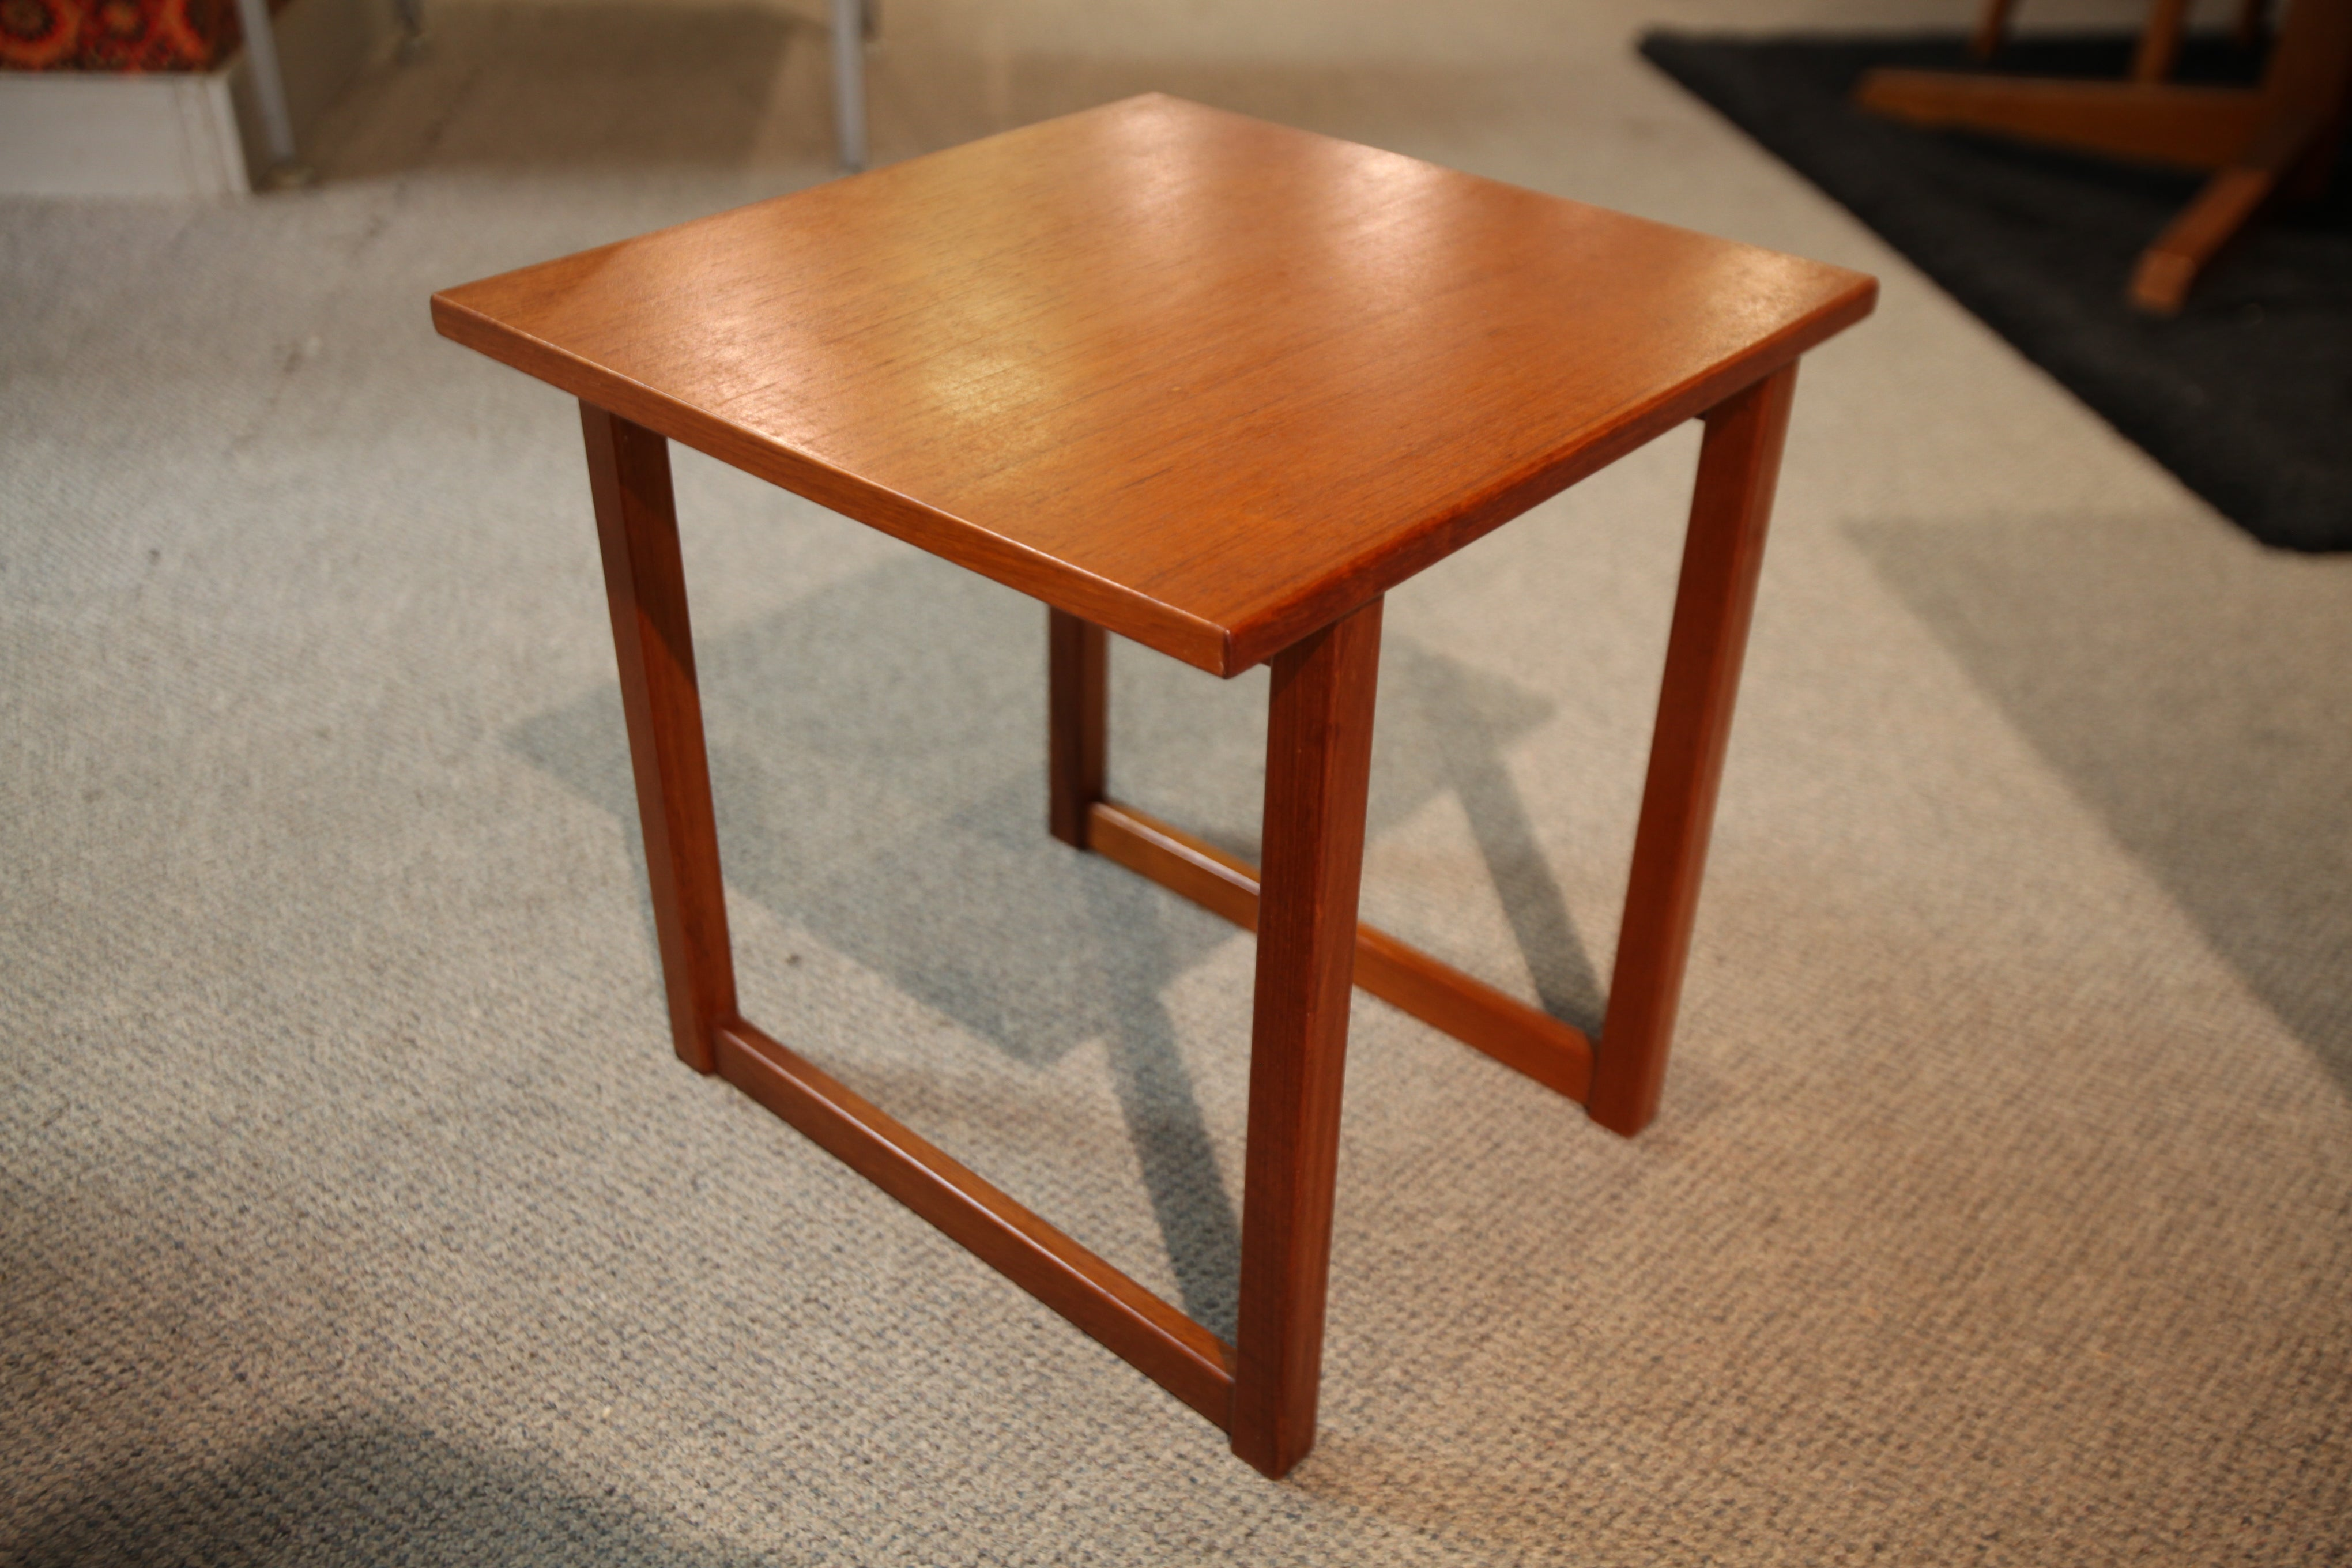 "Small Teak Side Table (16"" x 16.5"" x 16.5""H)"